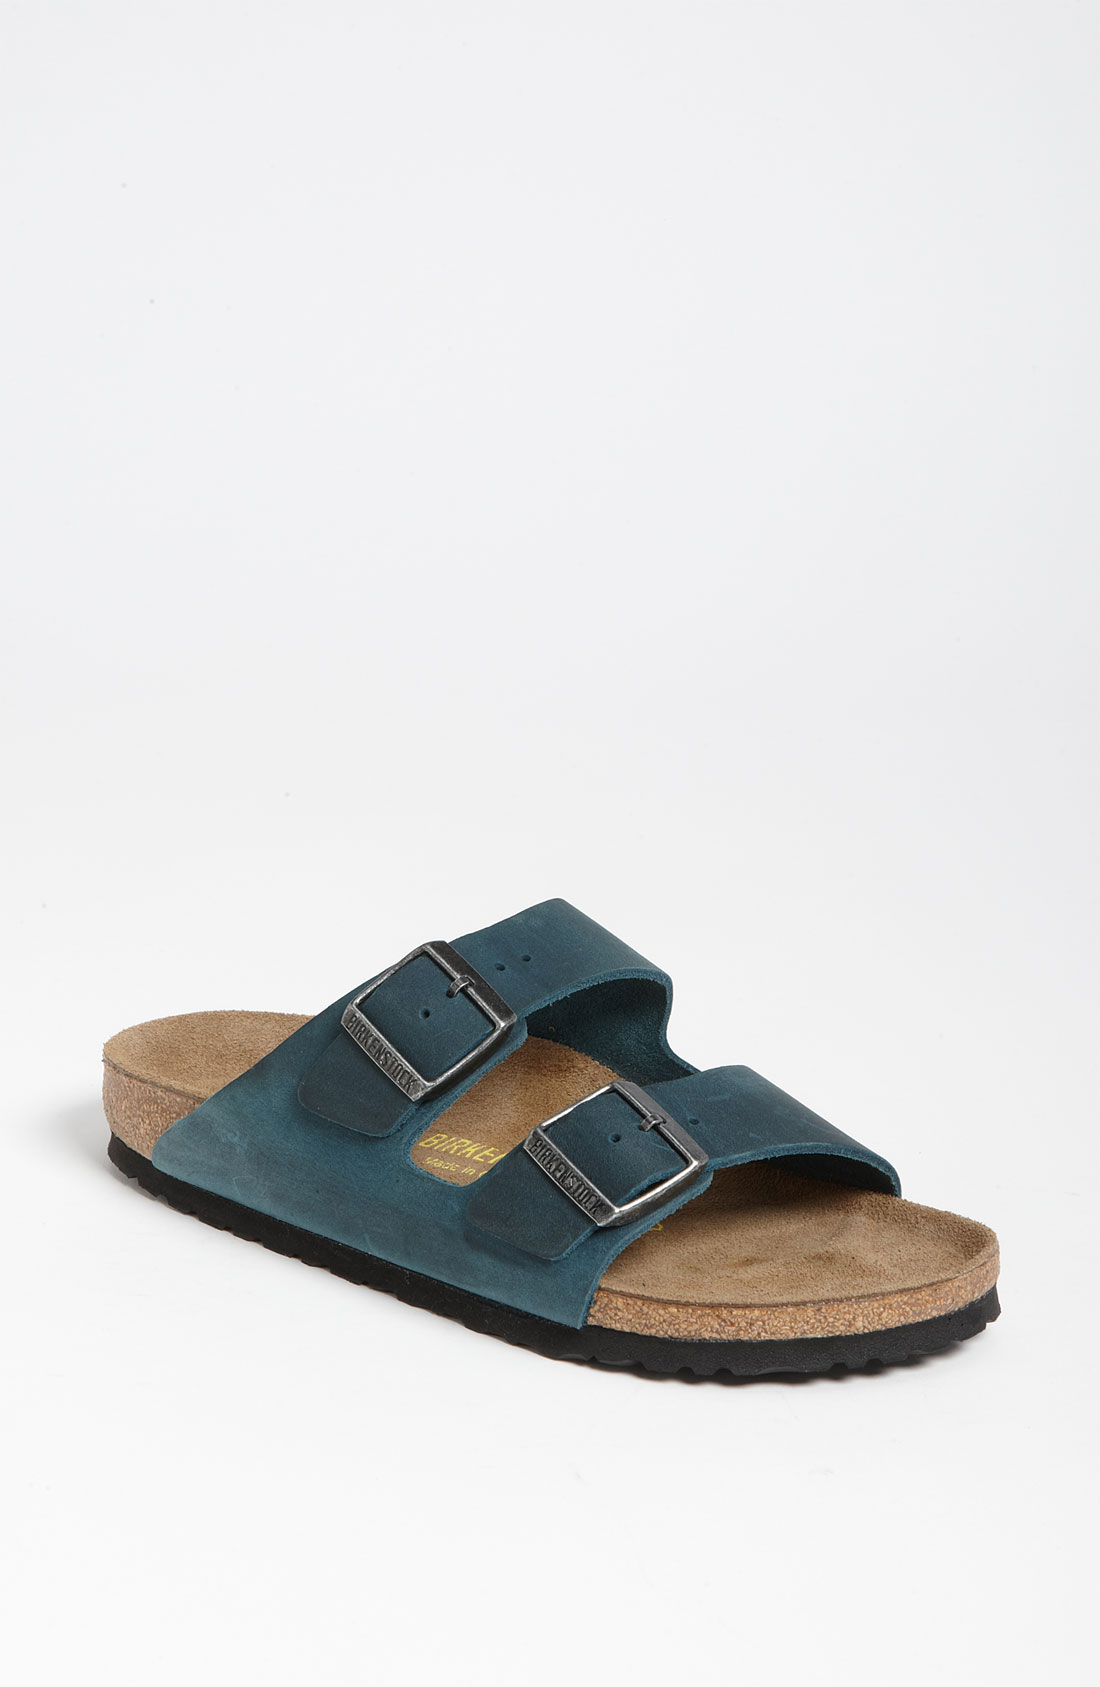 birkenstock gizeh turquoise oiled leather